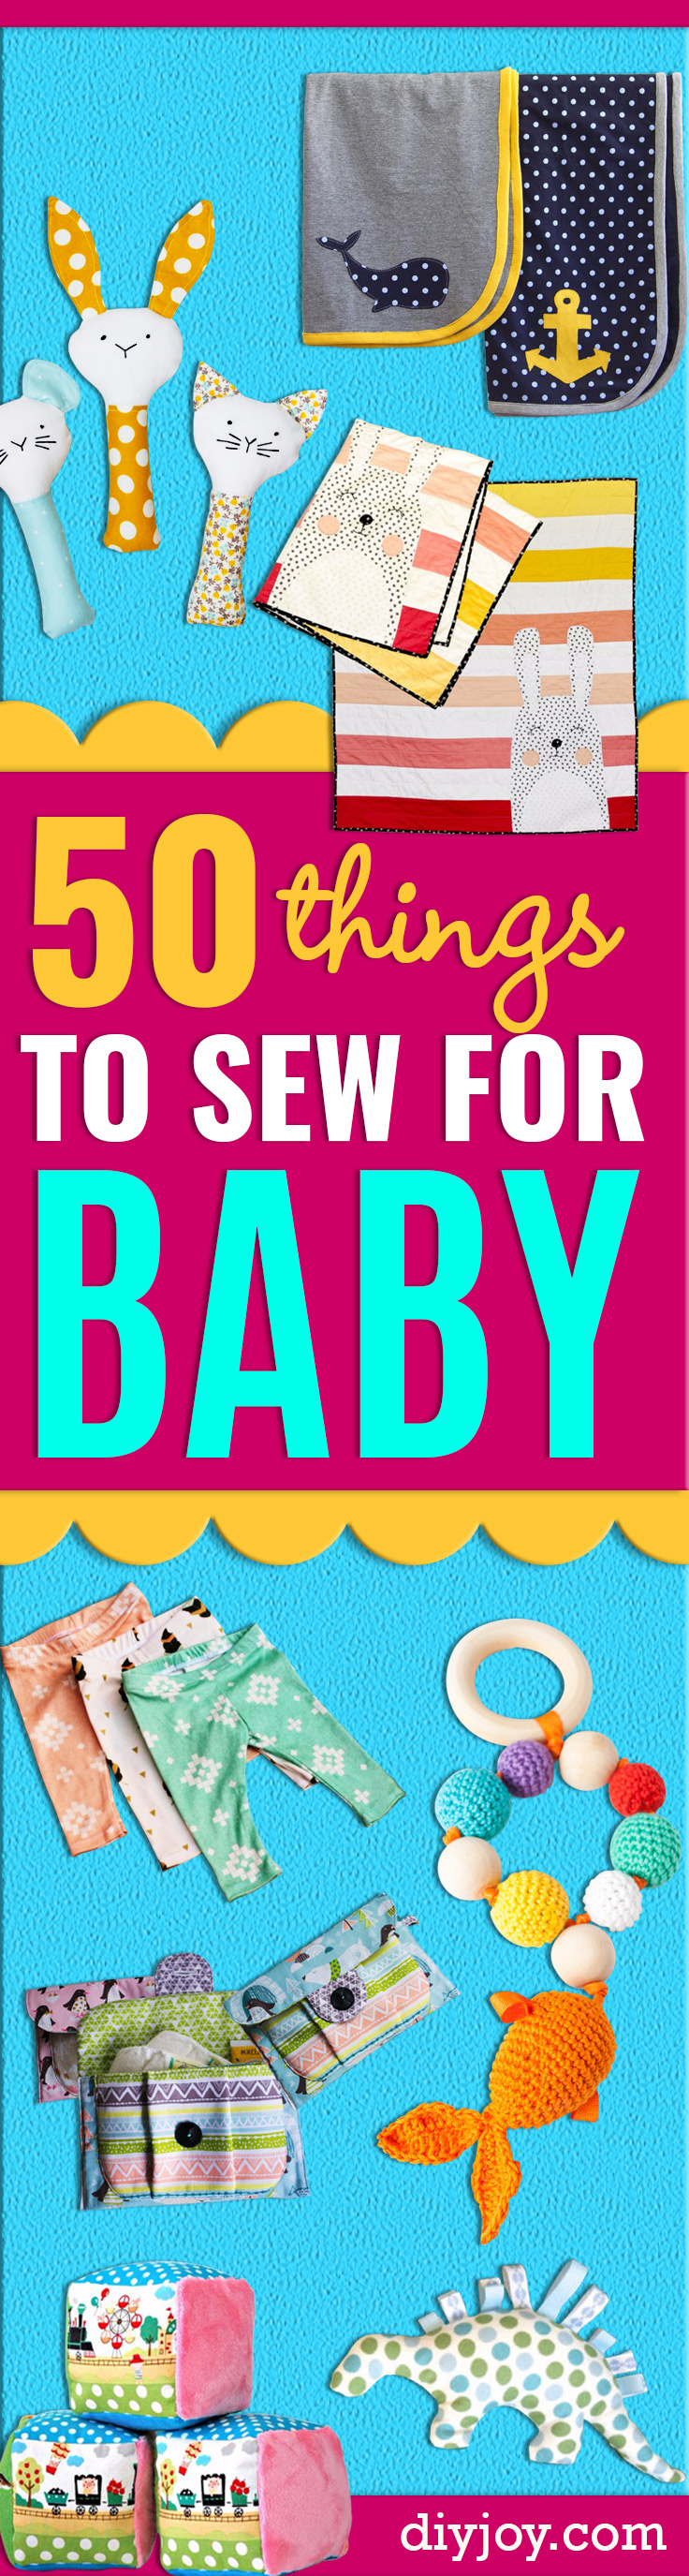 Things to Sew for Baby - Cool Gifts For Baby, Easy Things To Sew And Sell, Quick Things To Sew For Baby, Easy Baby Sewing Projects For Beginners, Baby Items To Sew And Sell #diy #baby #diygifts